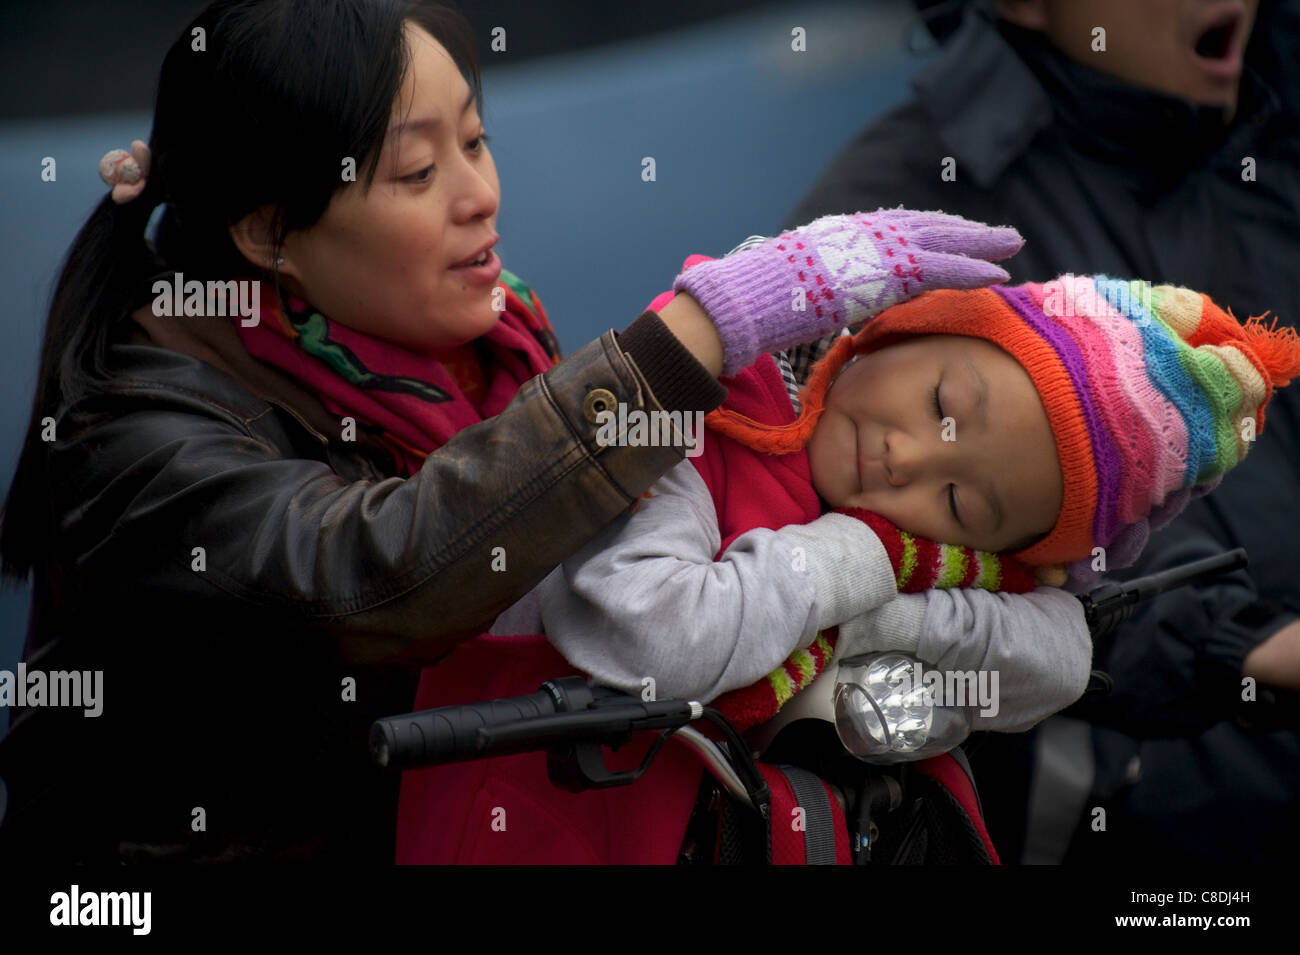 A Chinese mother touches her baby on an electric bicycle in Beijing, China. 20-Oct-2011 - Stock Image